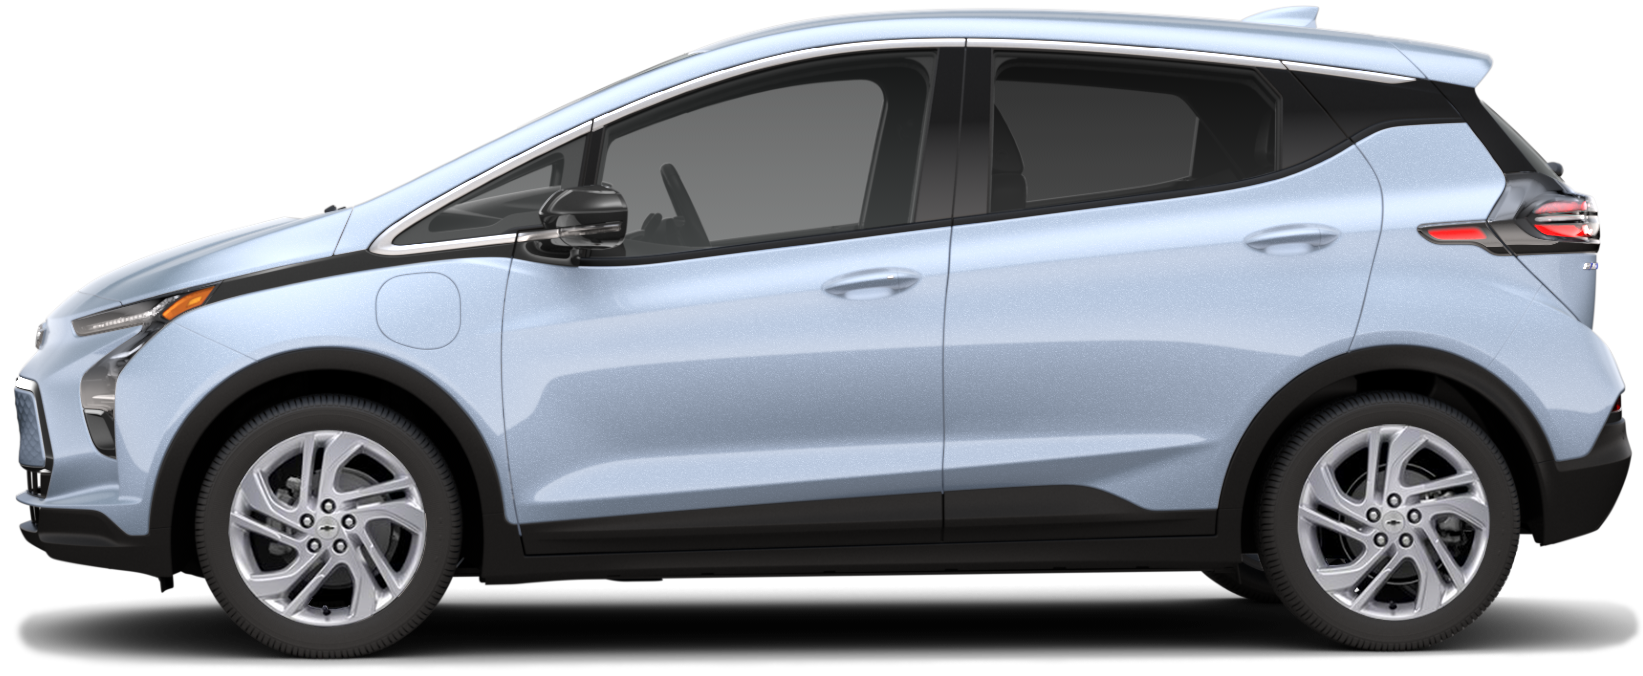 2022 Chevrolet Bolt EV Wagon 1LT